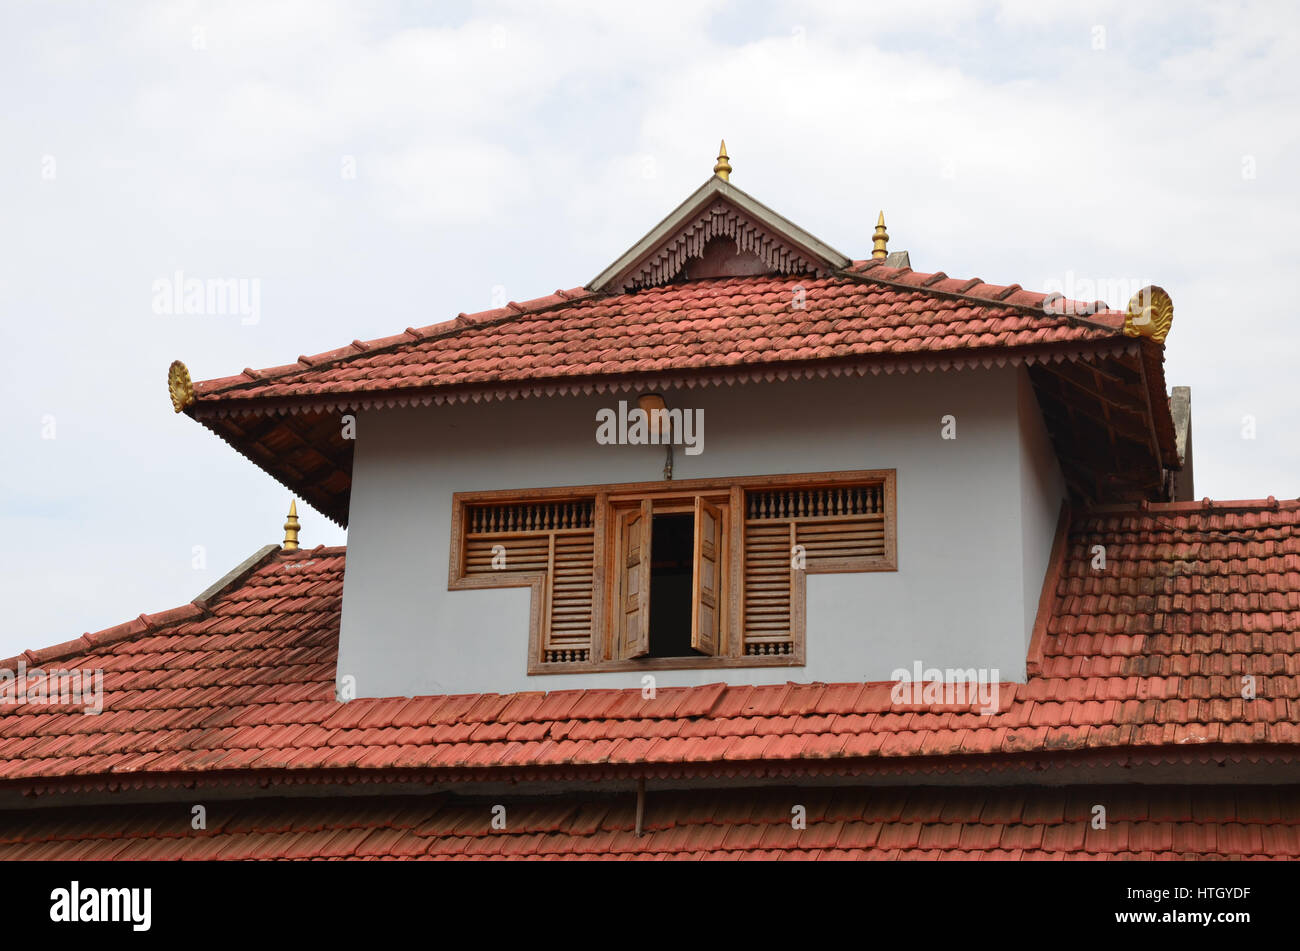 Traditional Architecture Of A Tiled Roof House In Kerala Using Stock Photo Royalty Free Image